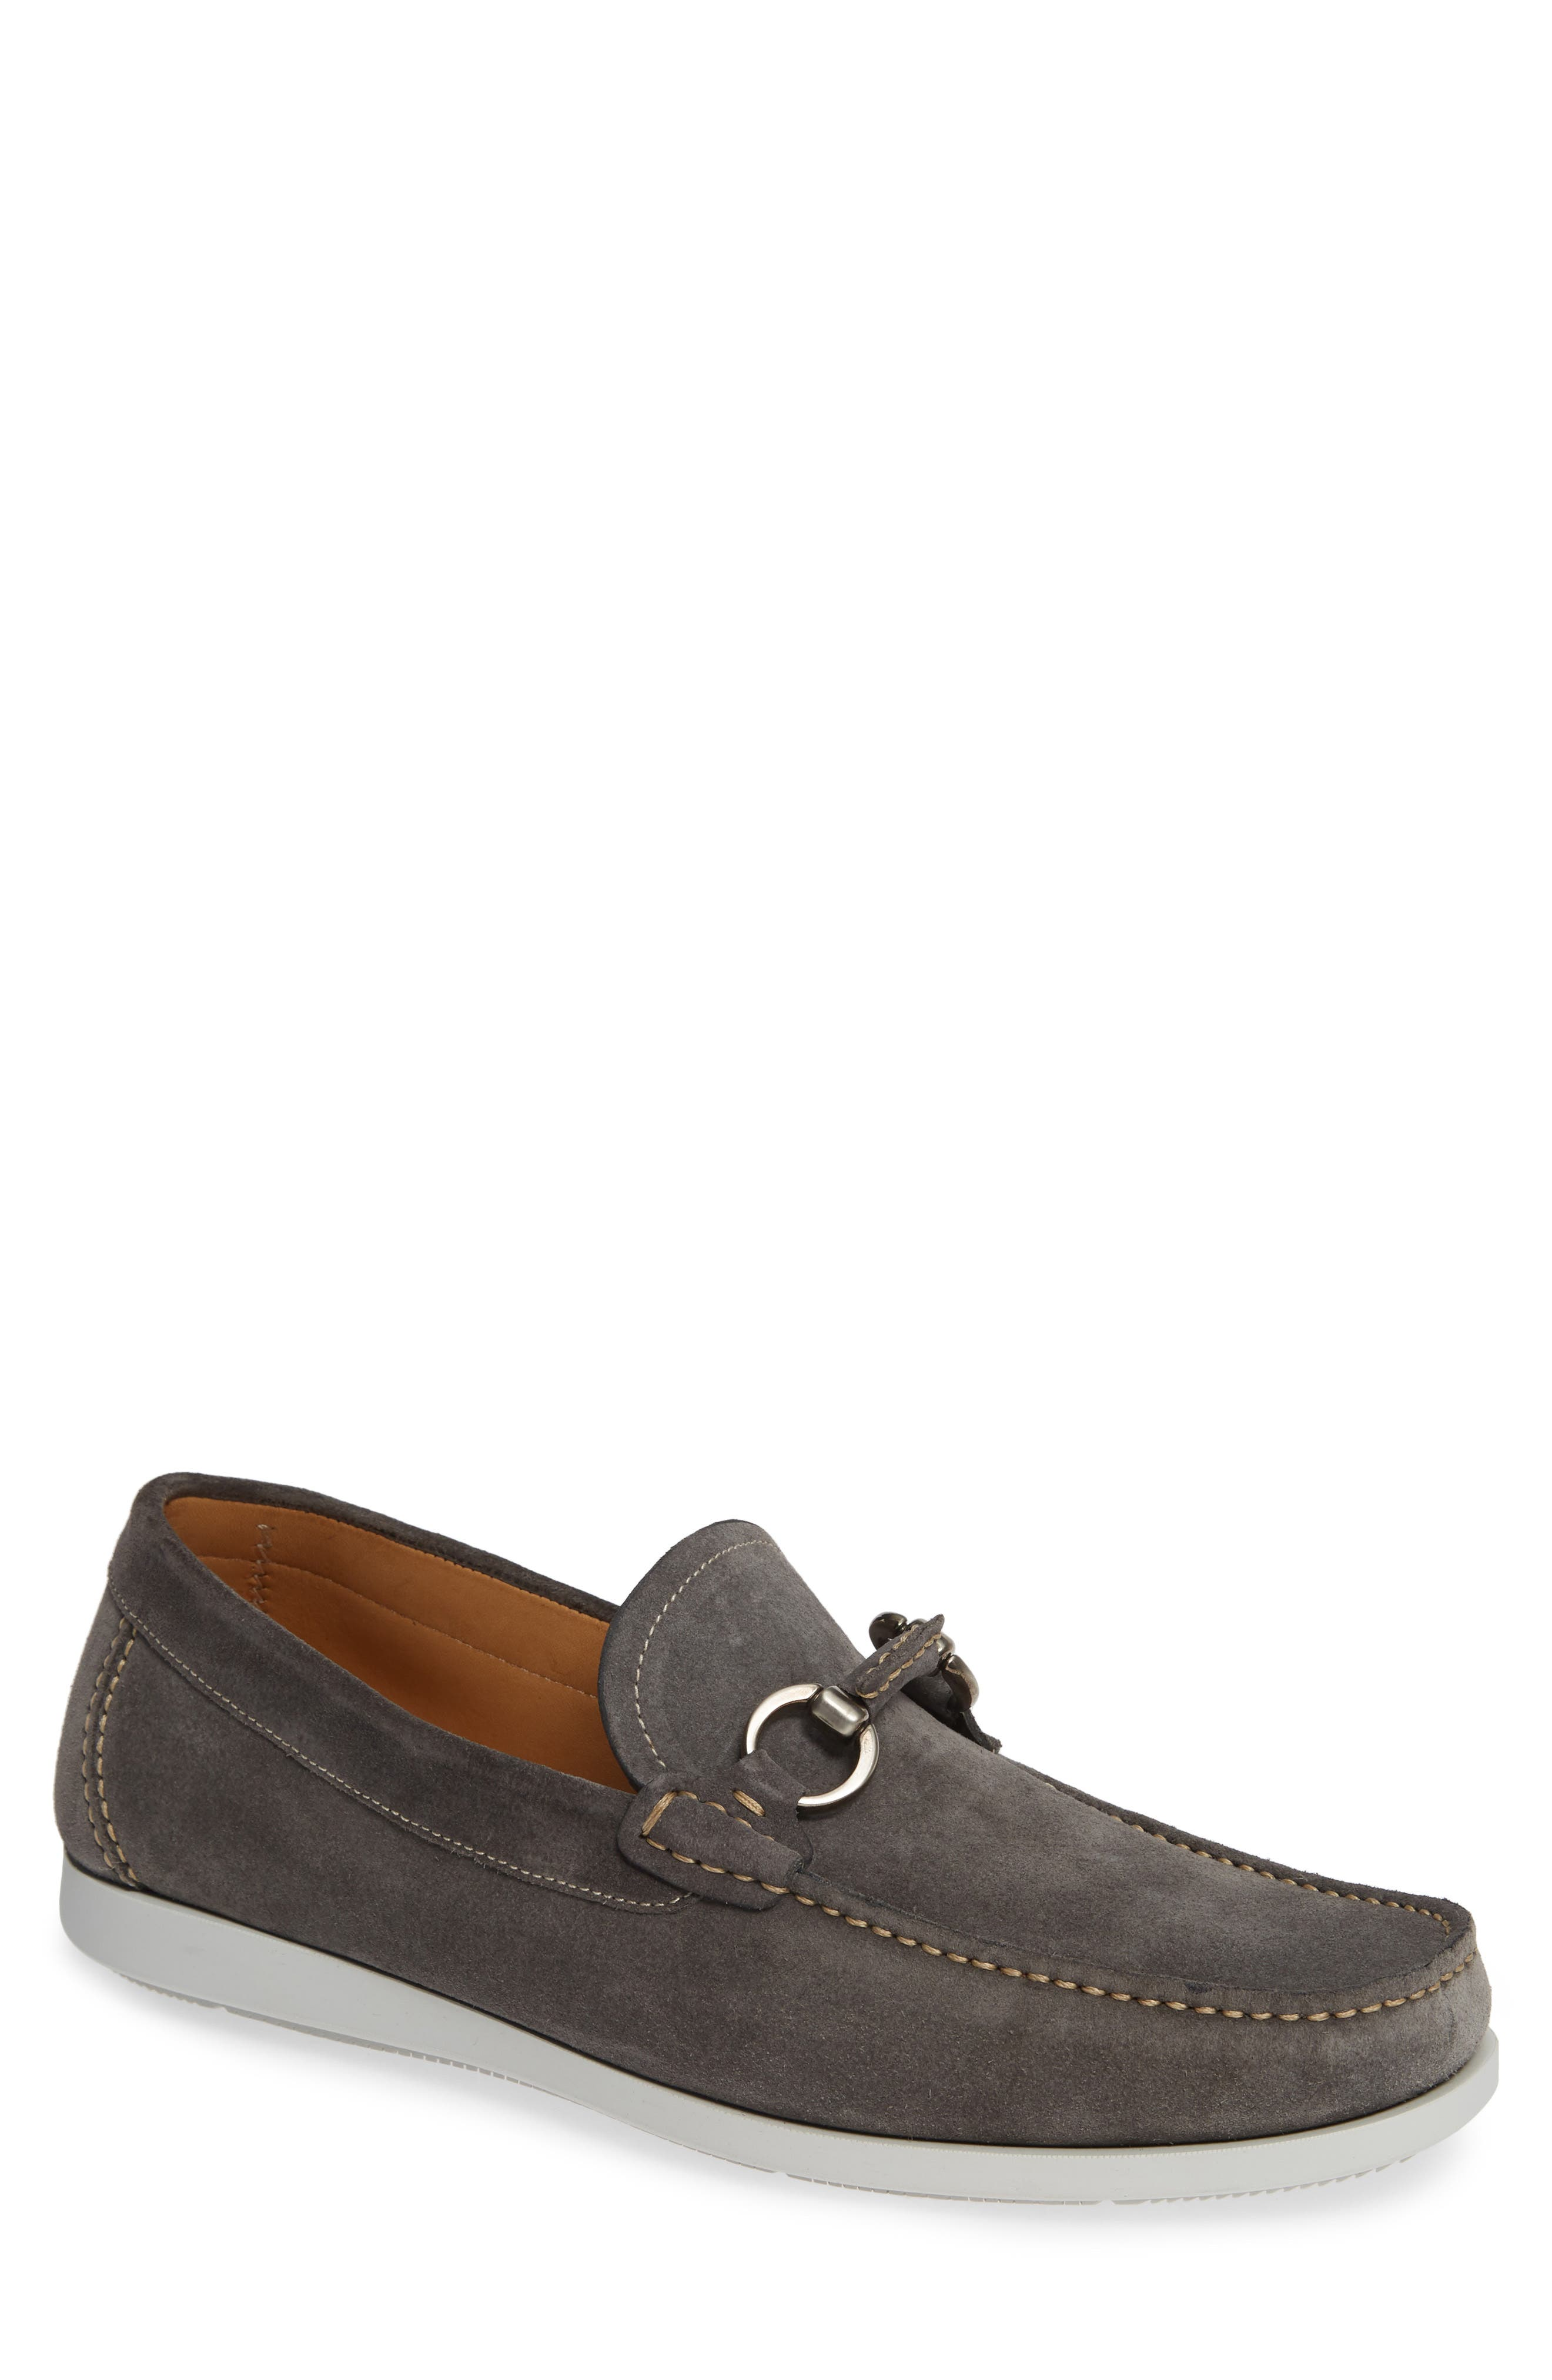 Marbella Bit Loafer,                             Main thumbnail 1, color,                             GREY SUEDE